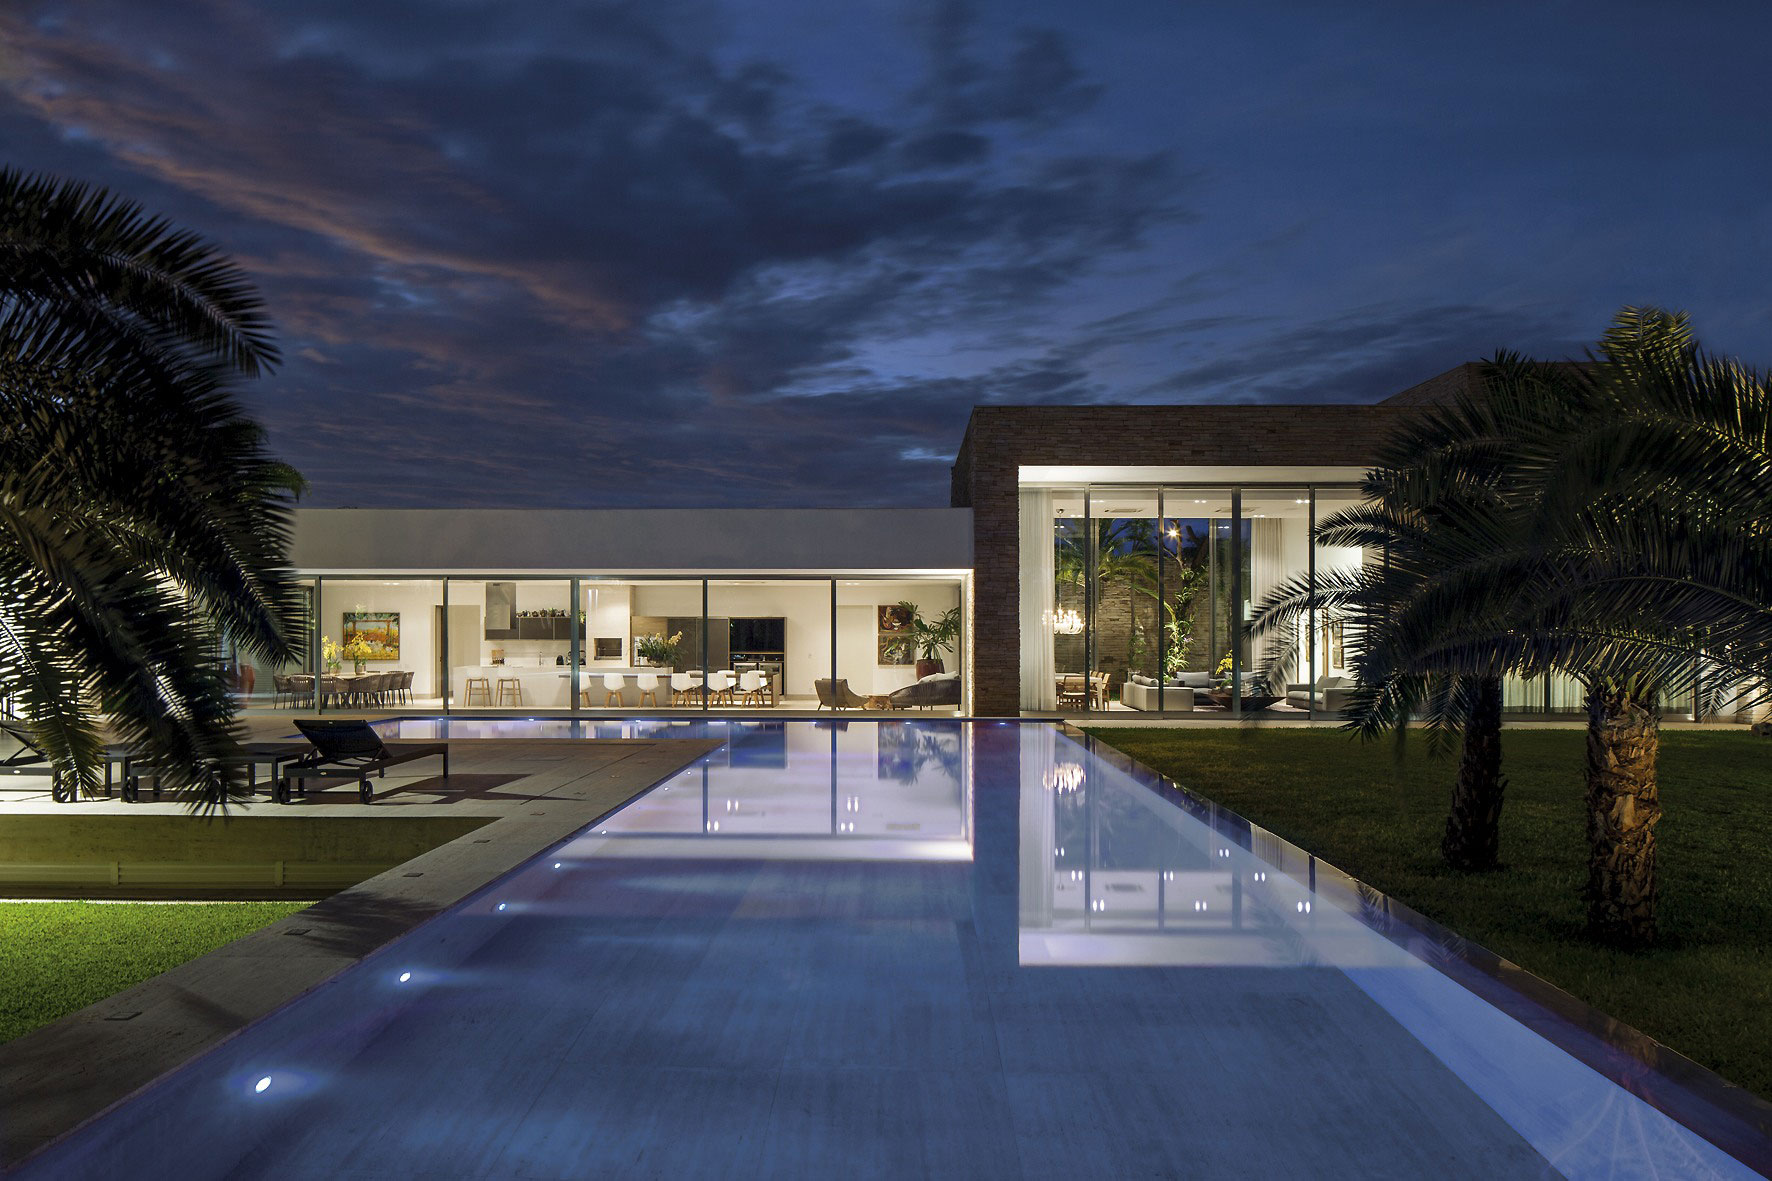 Exquisite Contemporary Home in Uberlândia, Brazil